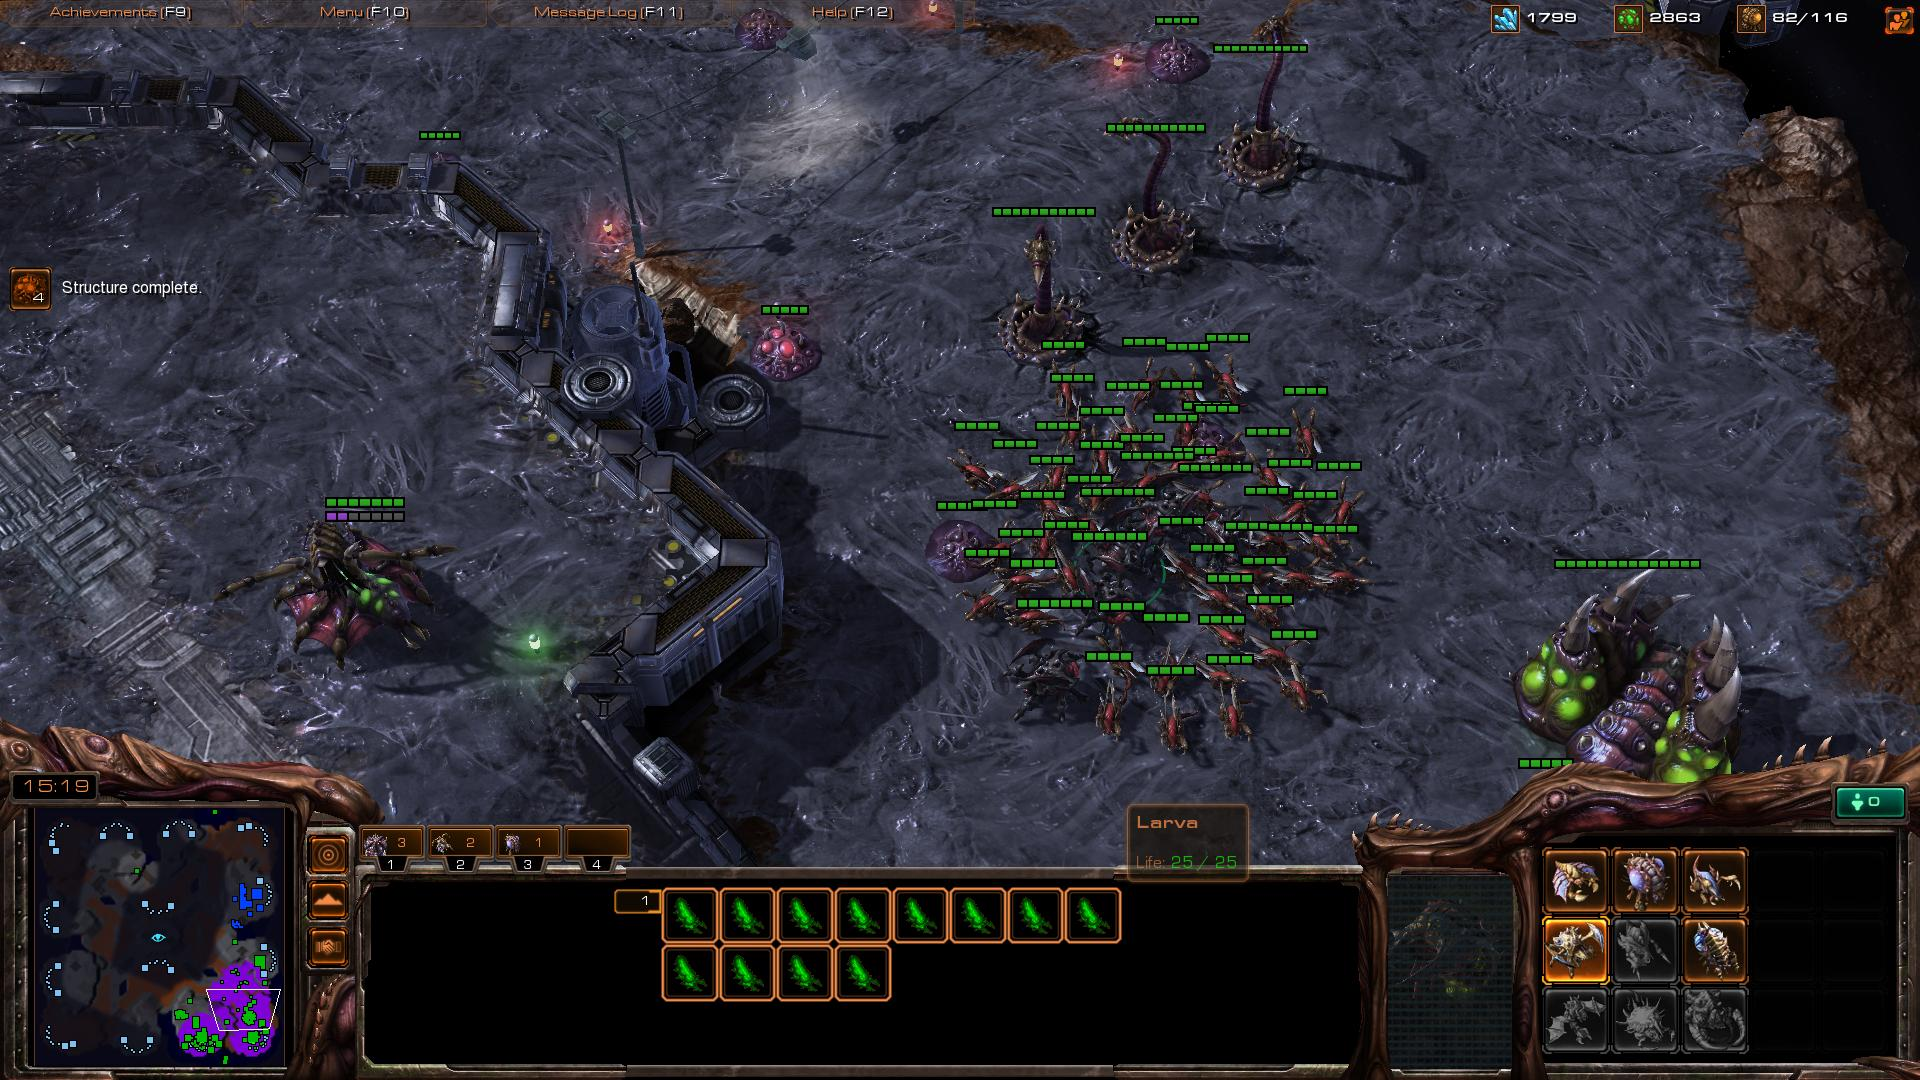 zergling sc2 sc2 screenshot